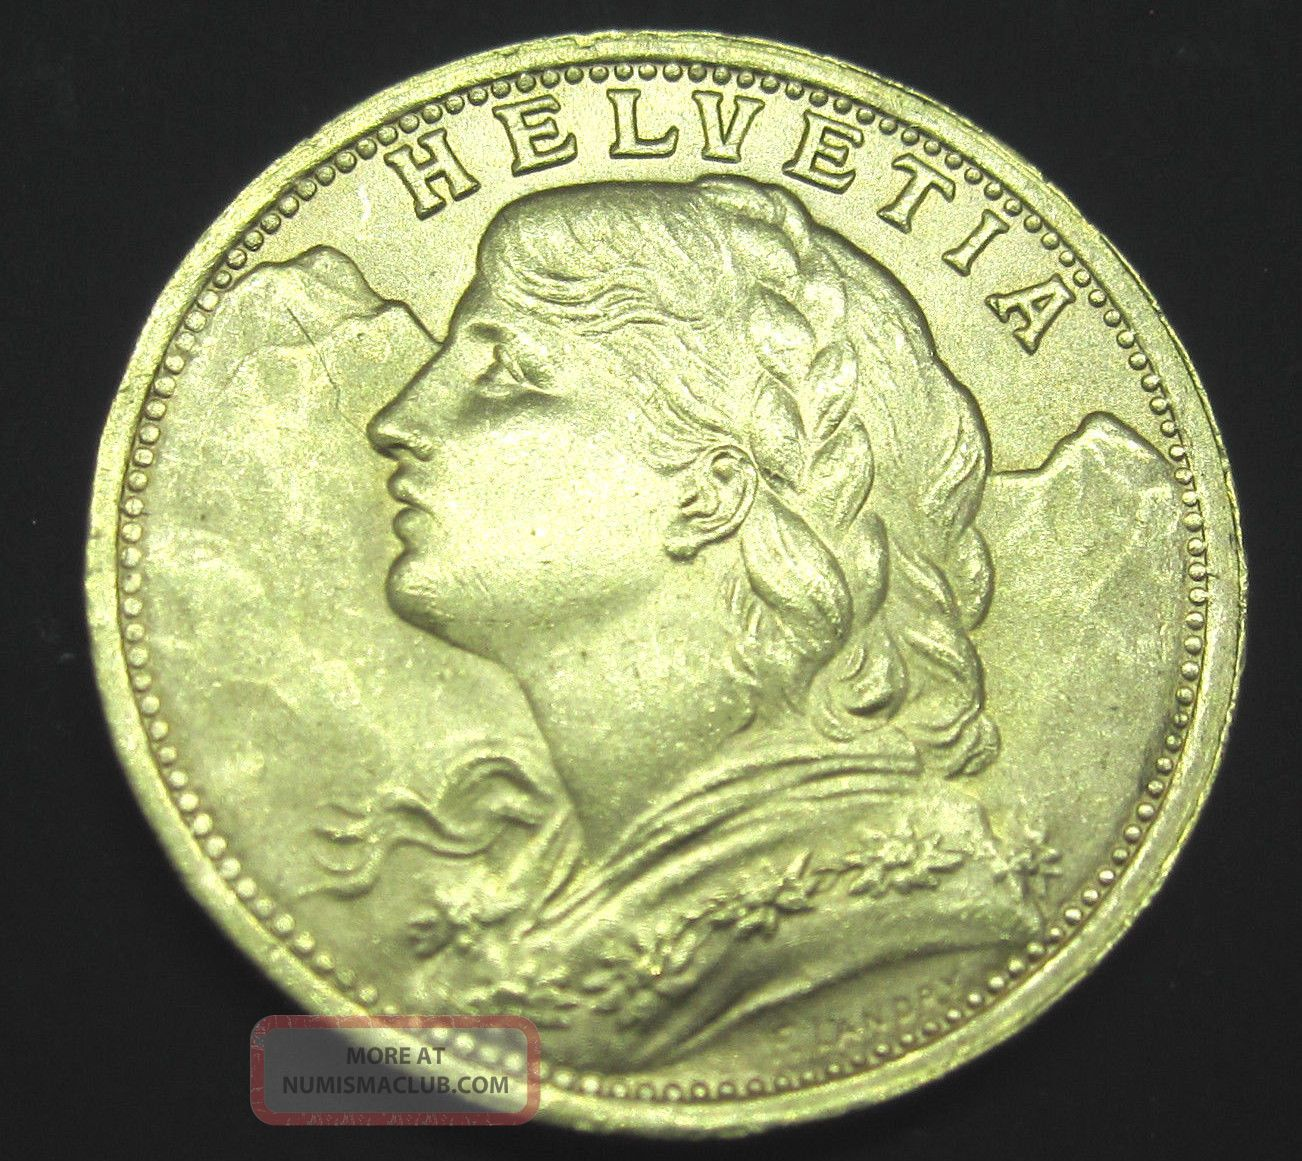 Swiss Helvetia L1935 B 20 Franc Gold Coin 1867 Troy Oz Gold Uncirculated